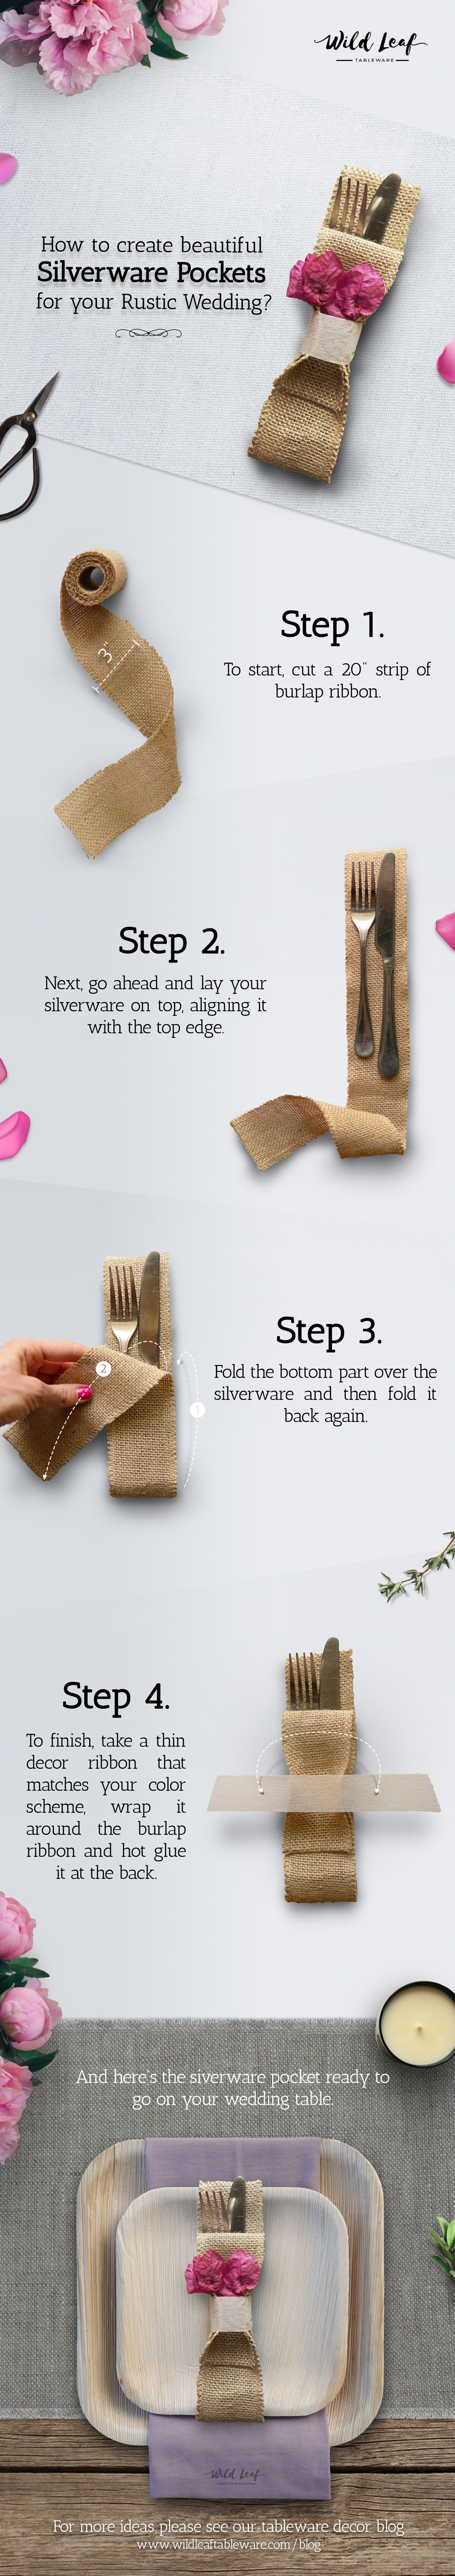 Diy burlap silverware pockets for your rustic themed wedding